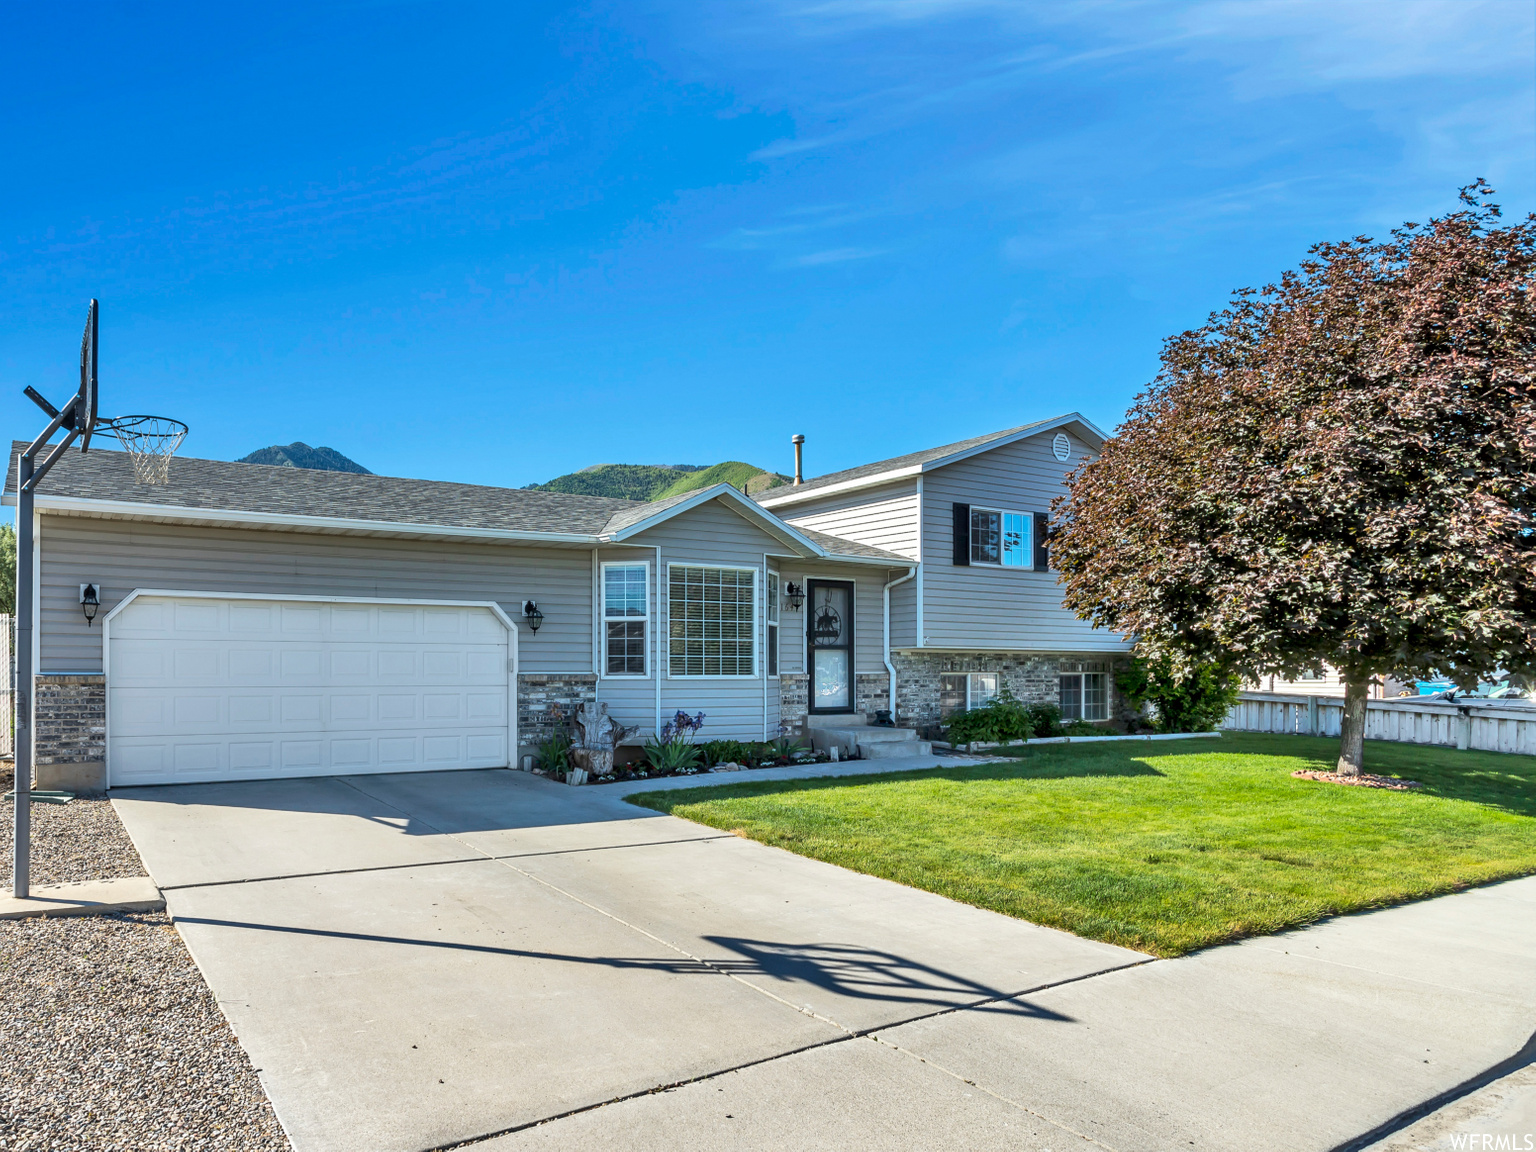 1649 S SPANISH RIDGE DR, Spanish Fork UT 84660